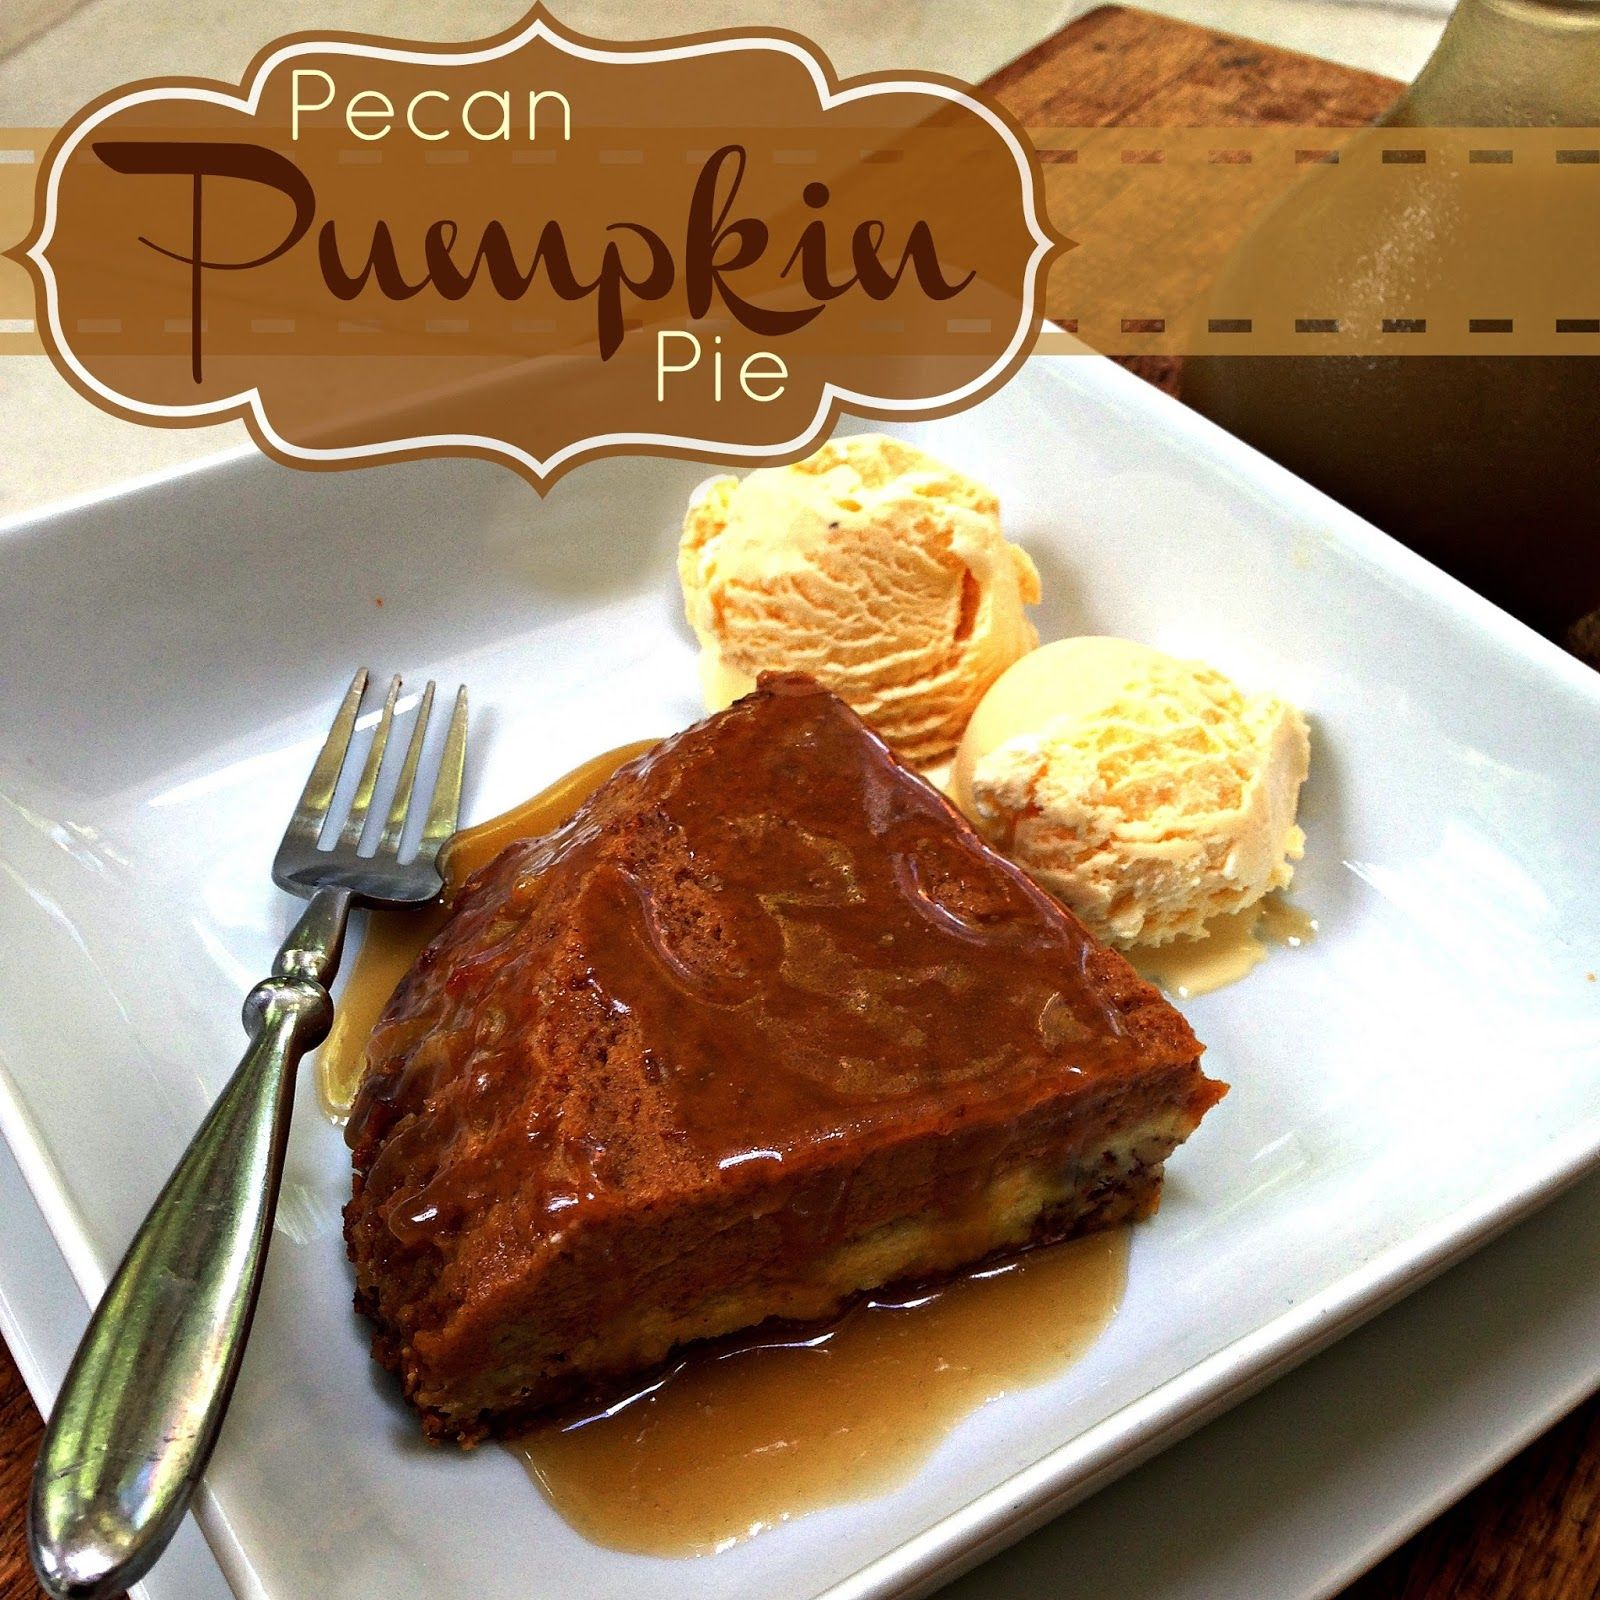 Thanksgiving Desserts Pecan Pie Pumpkin Pie More: One Of The Best Pies You Will Ever Eat! It Really Is SO